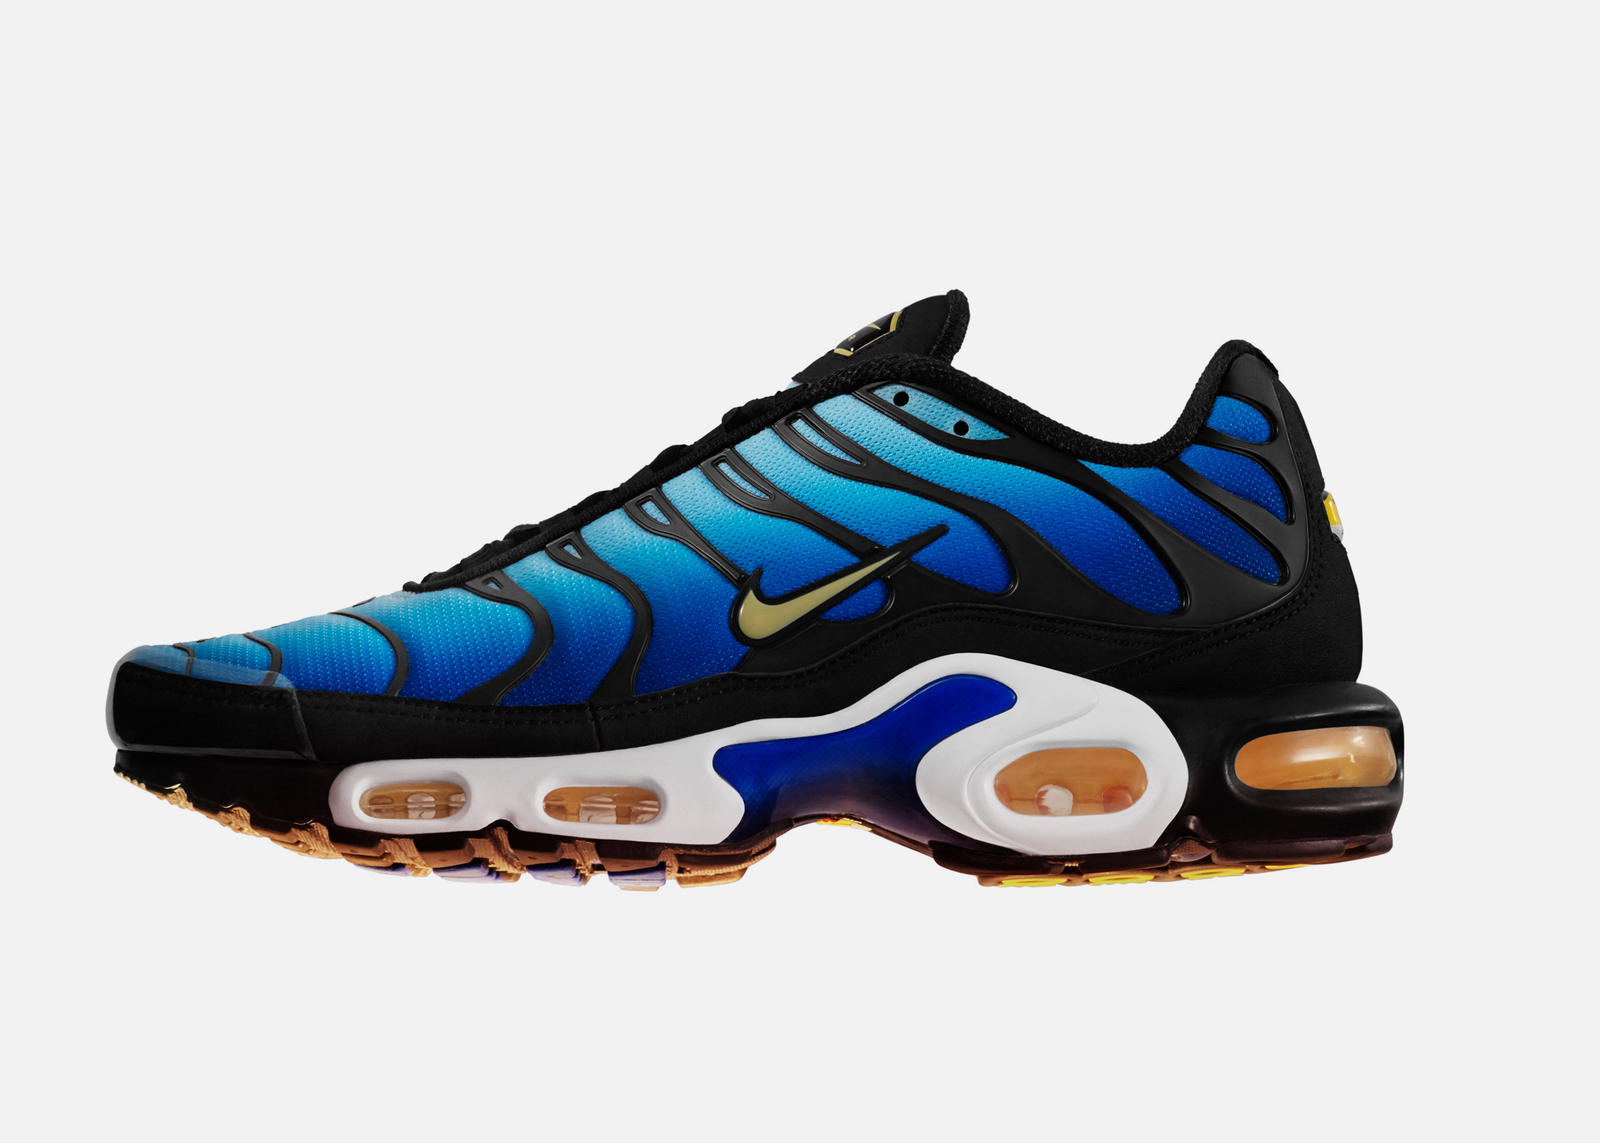 online retailer cd30a 4c046 The Untold Story of the Nike Air Max Plus 20